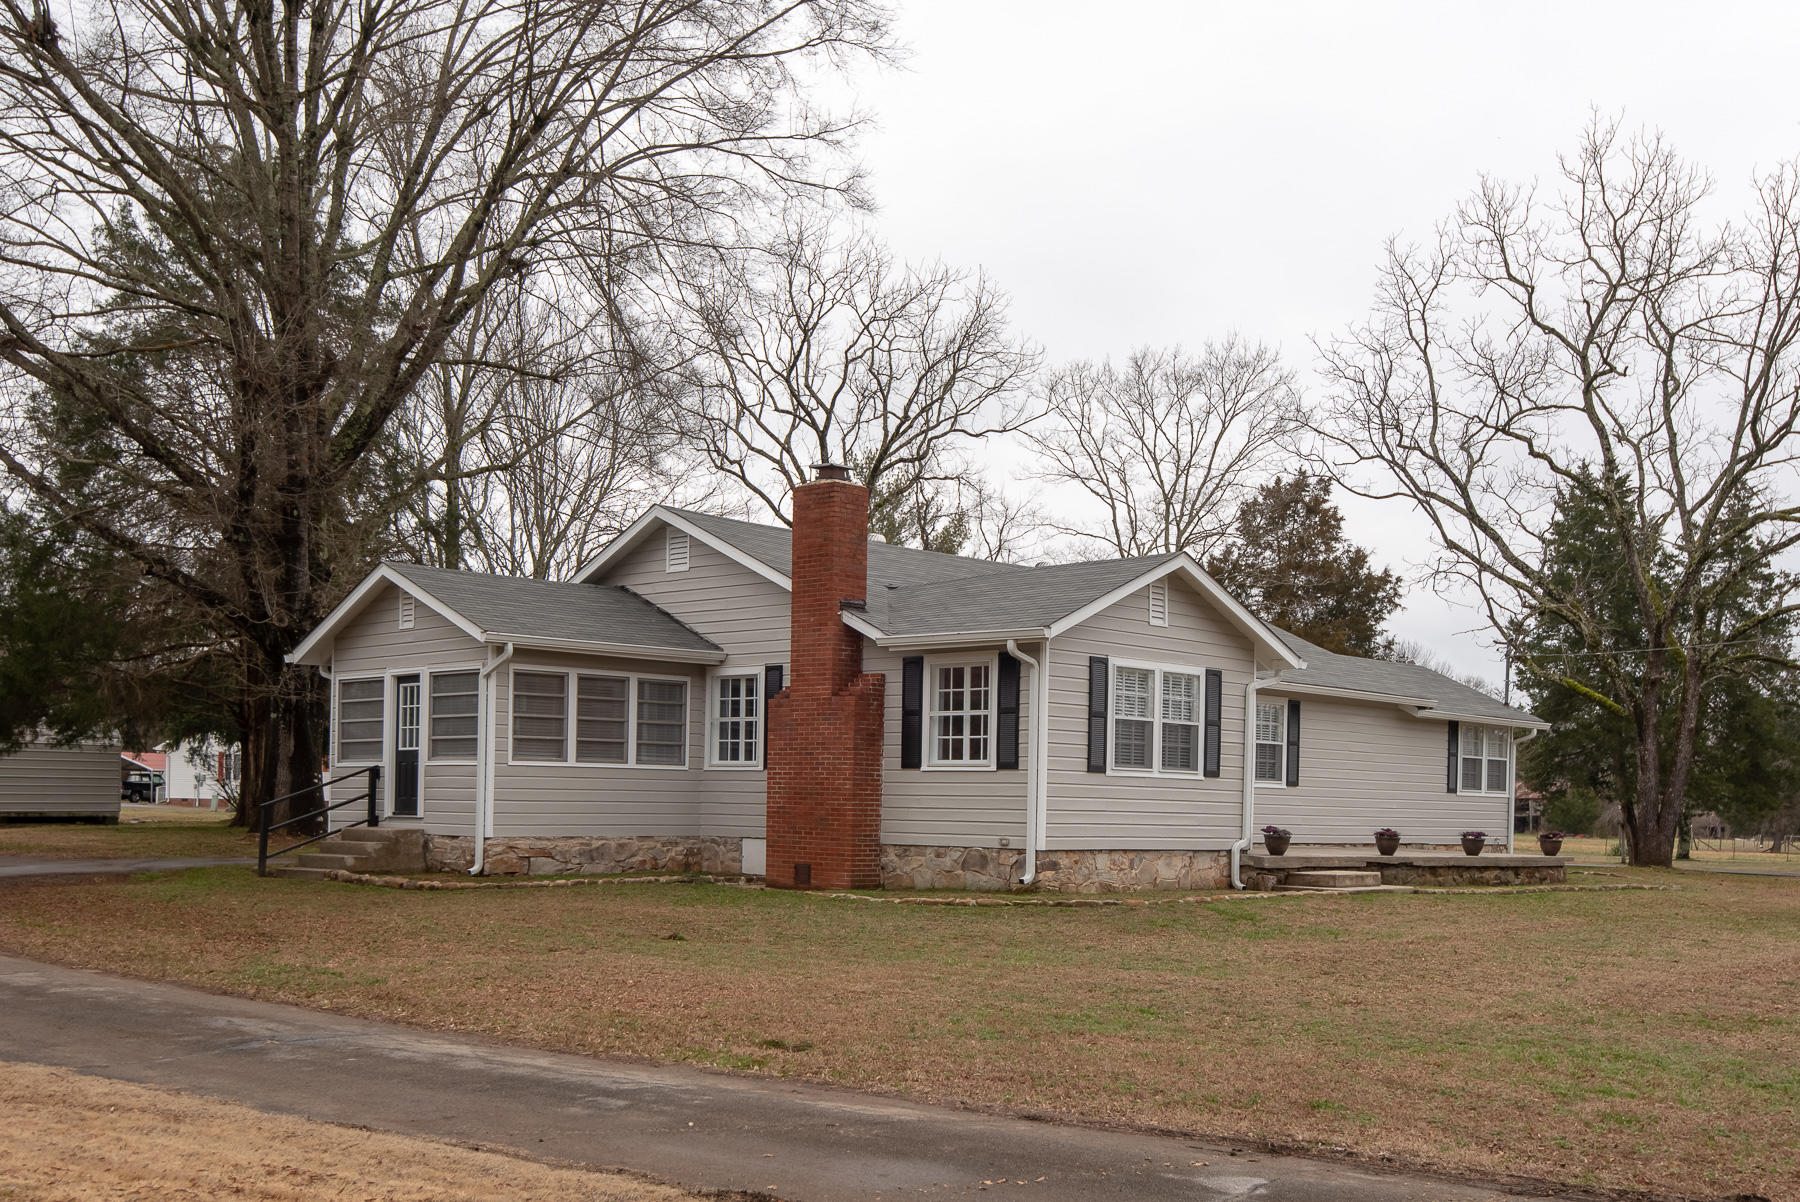 15213 Roark Rd, Sale Creek, TN 37373